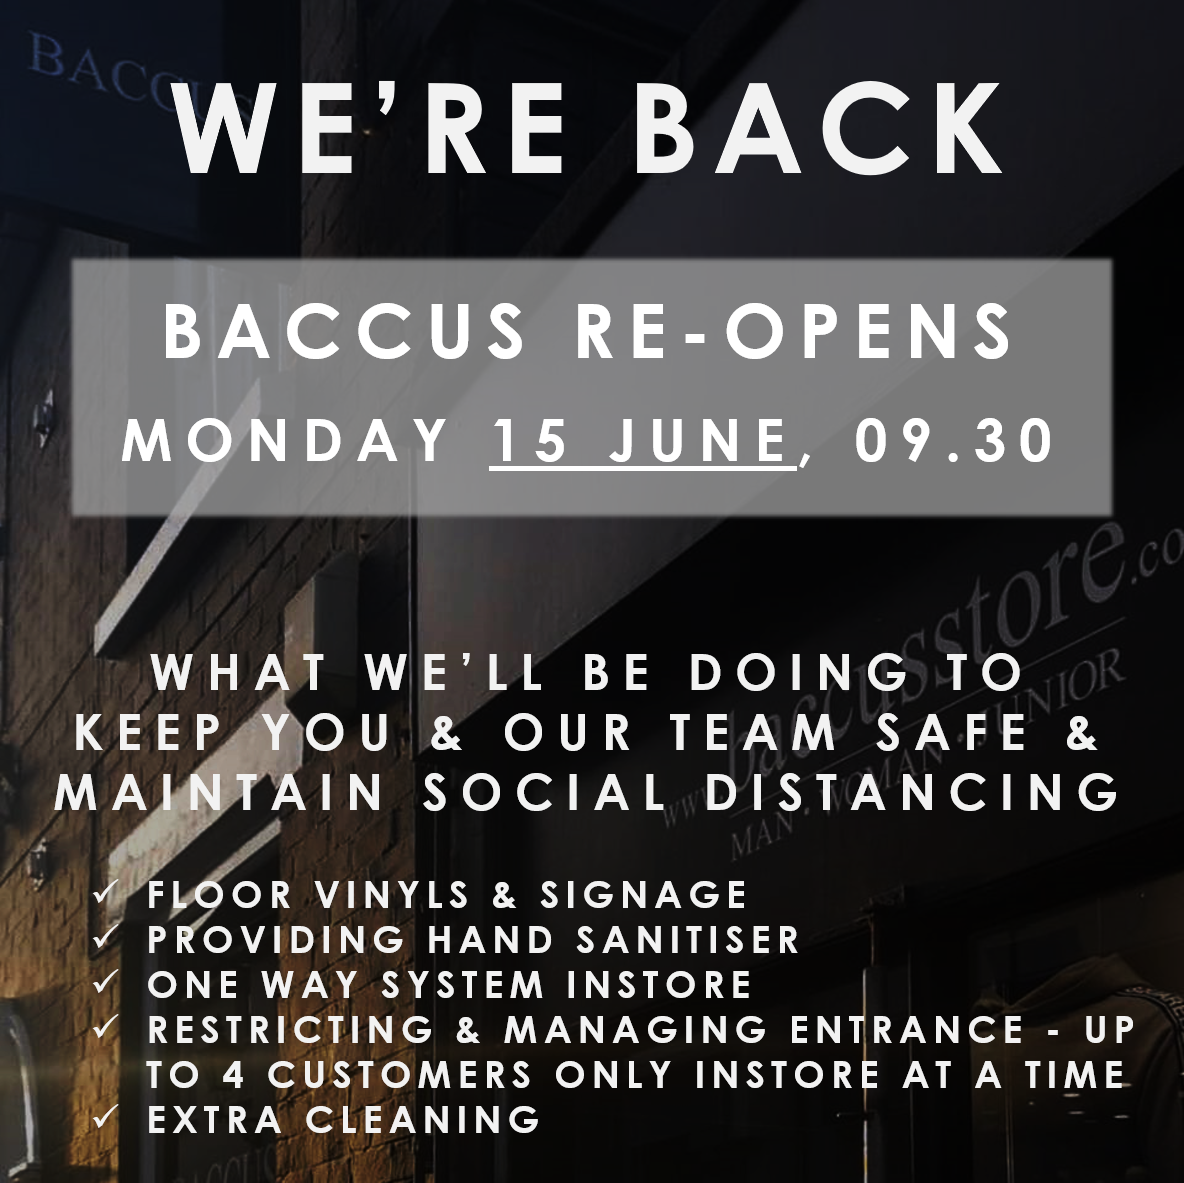 BACCUS REOPENS 1